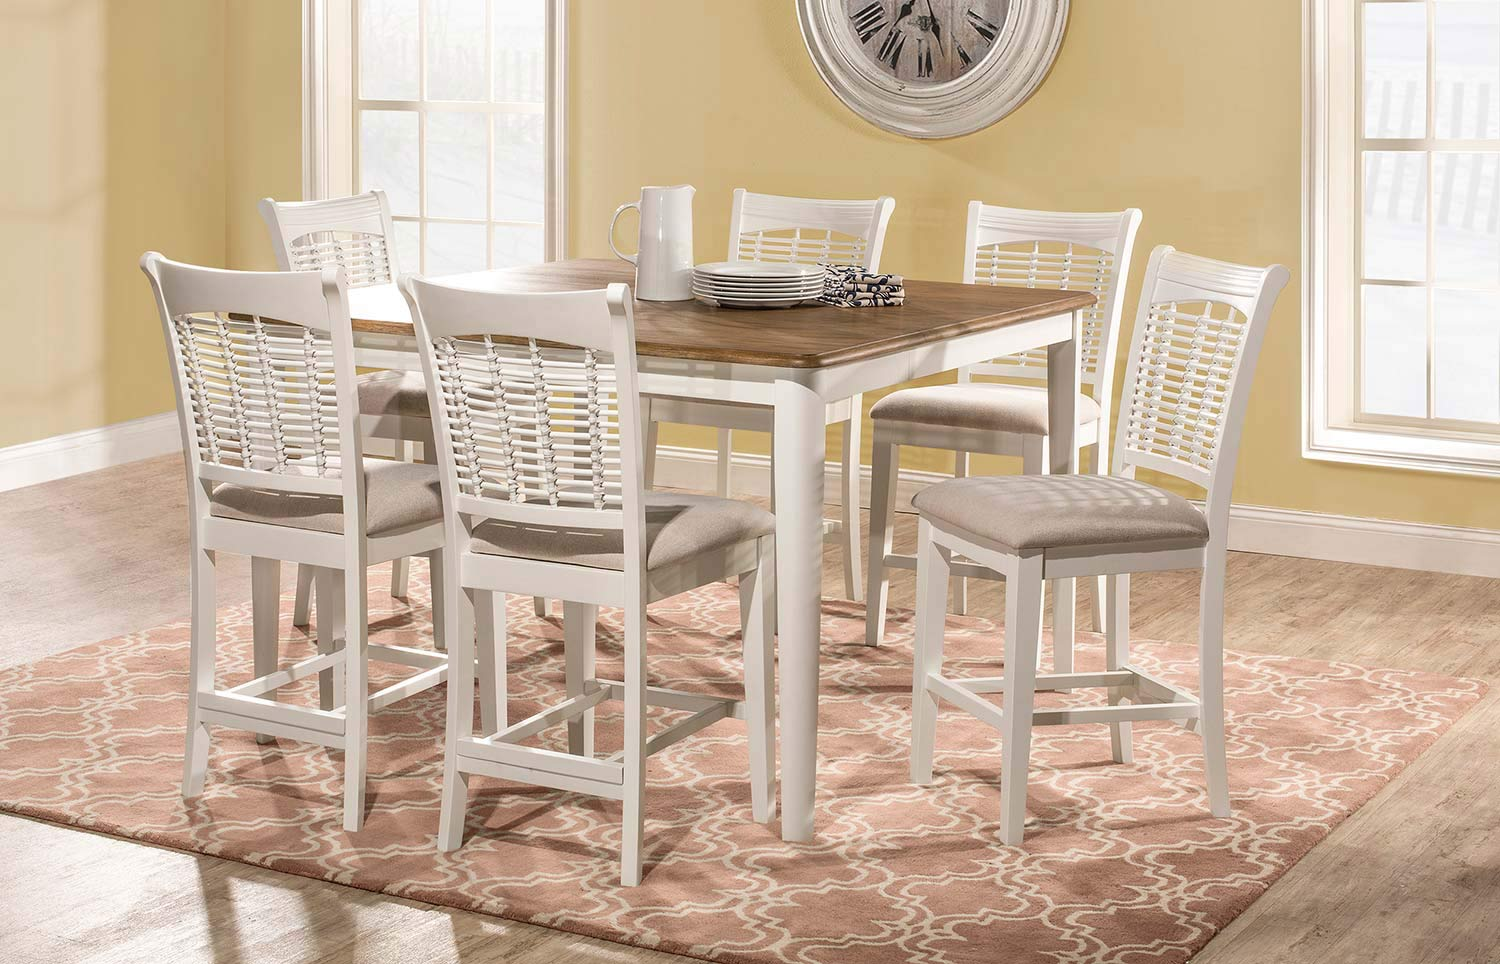 Hillsdale Bayberry 7 Piece Counter Height Dining Set   White/Driftwood